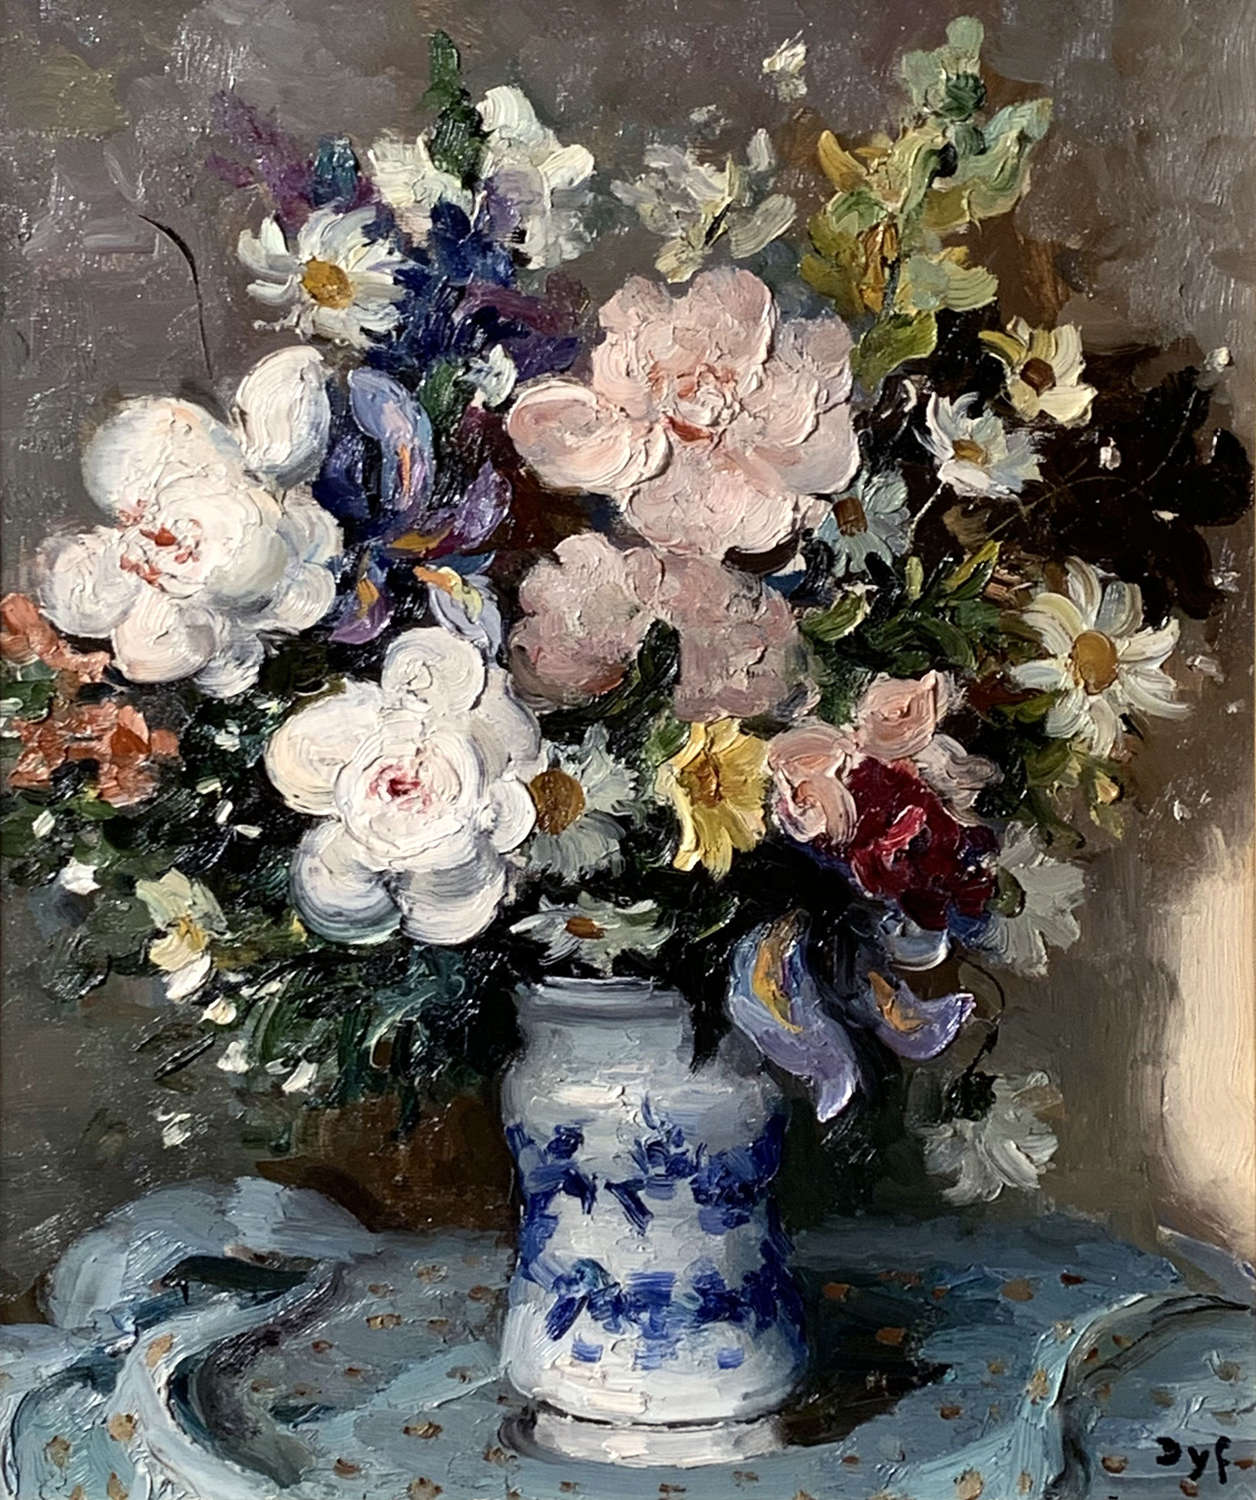 Marcel Dyf (1899 – 1985) Oil on Canvas